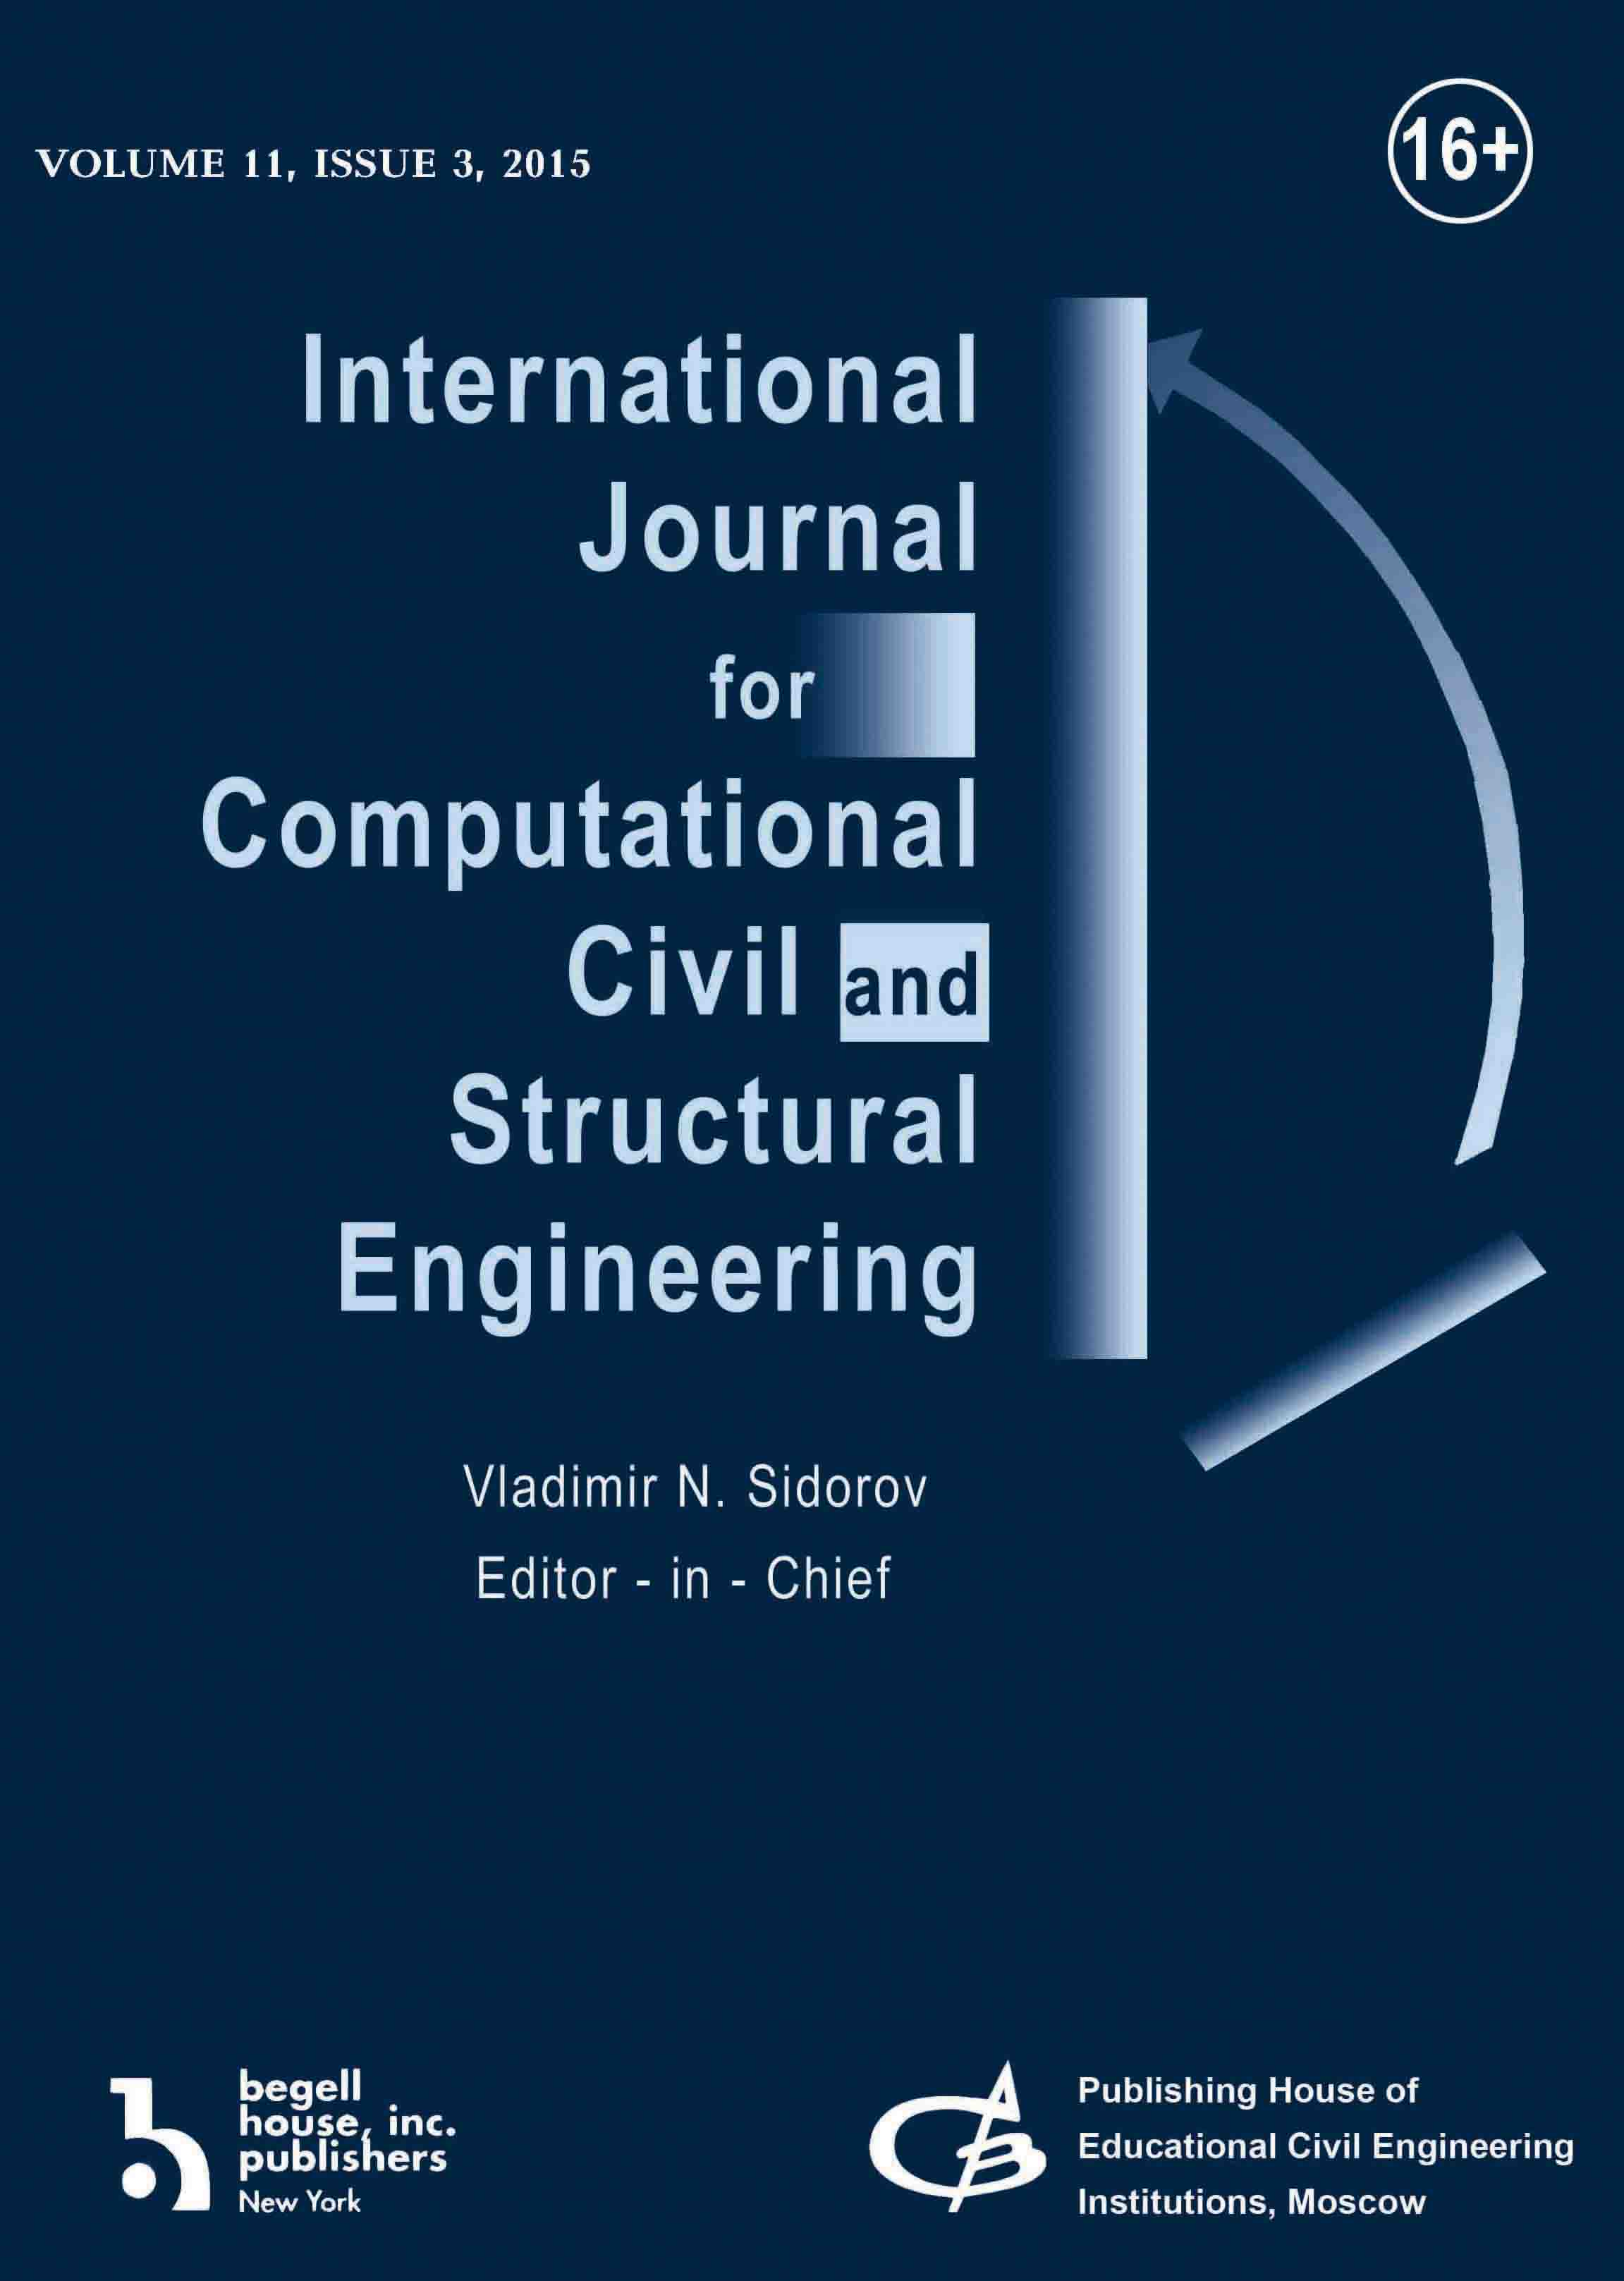 International Journal for Computational Civil and Structural